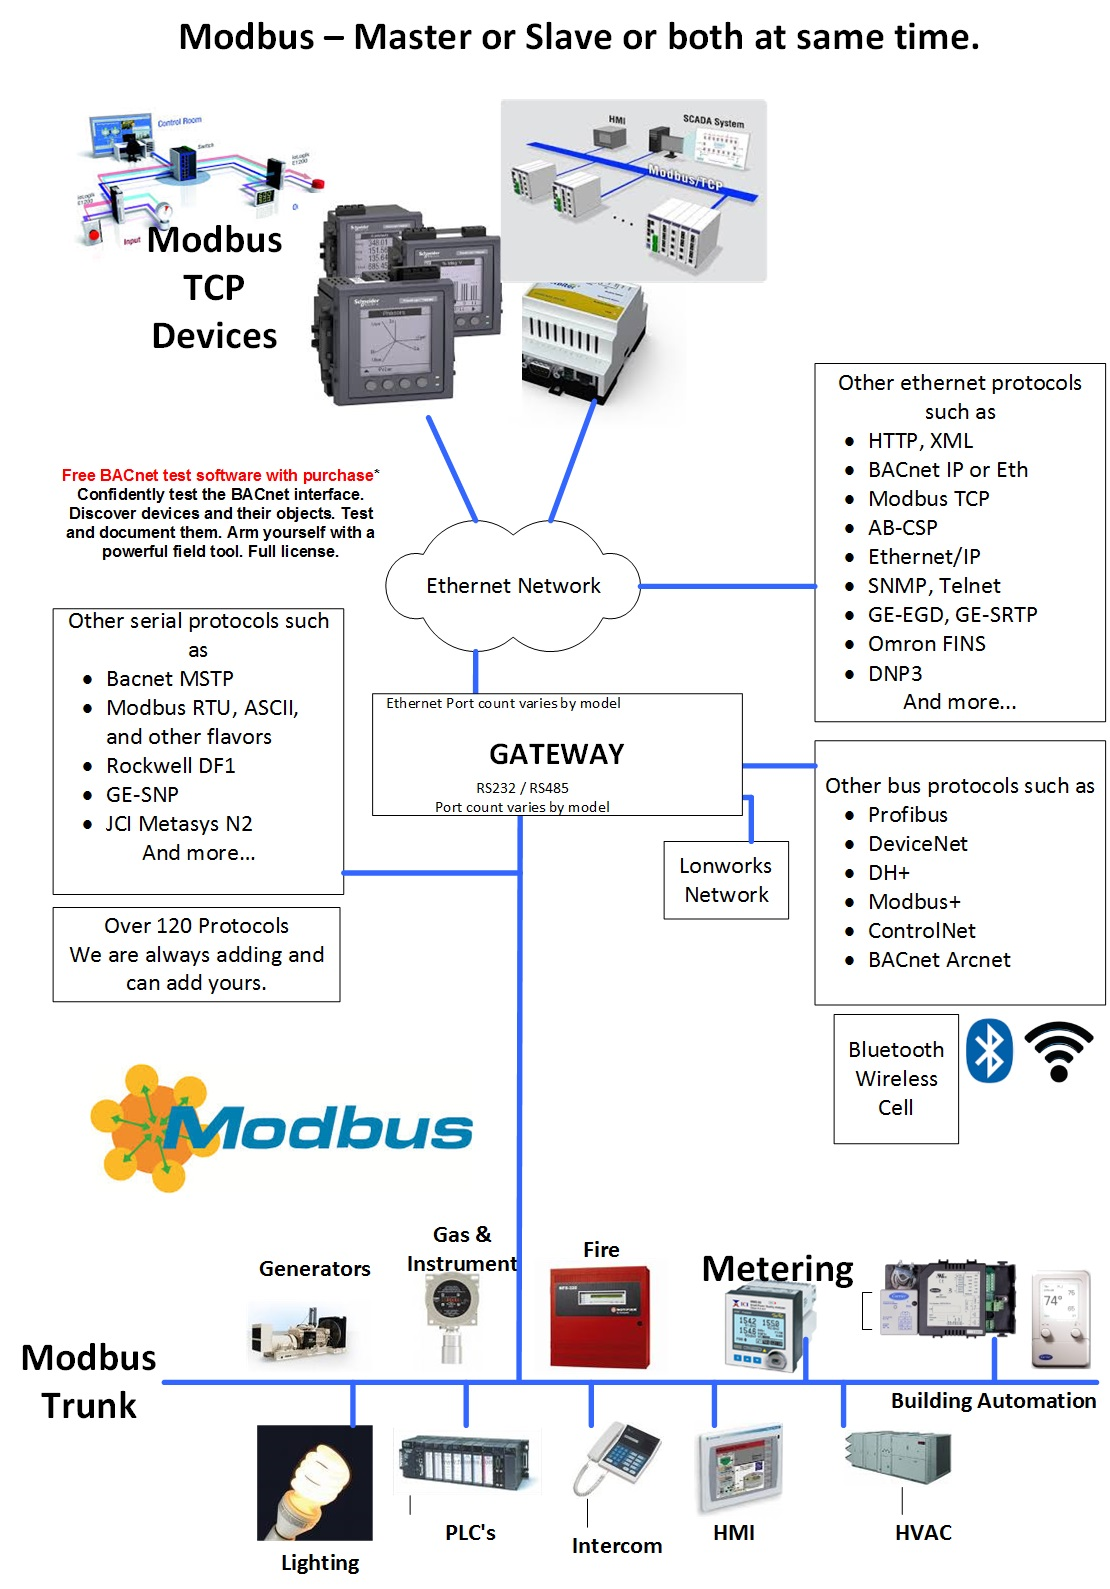 Multistack compu25 to bacnet and modbus importsblockdiagramslp modbusg cheapraybanclubmaster Image collections